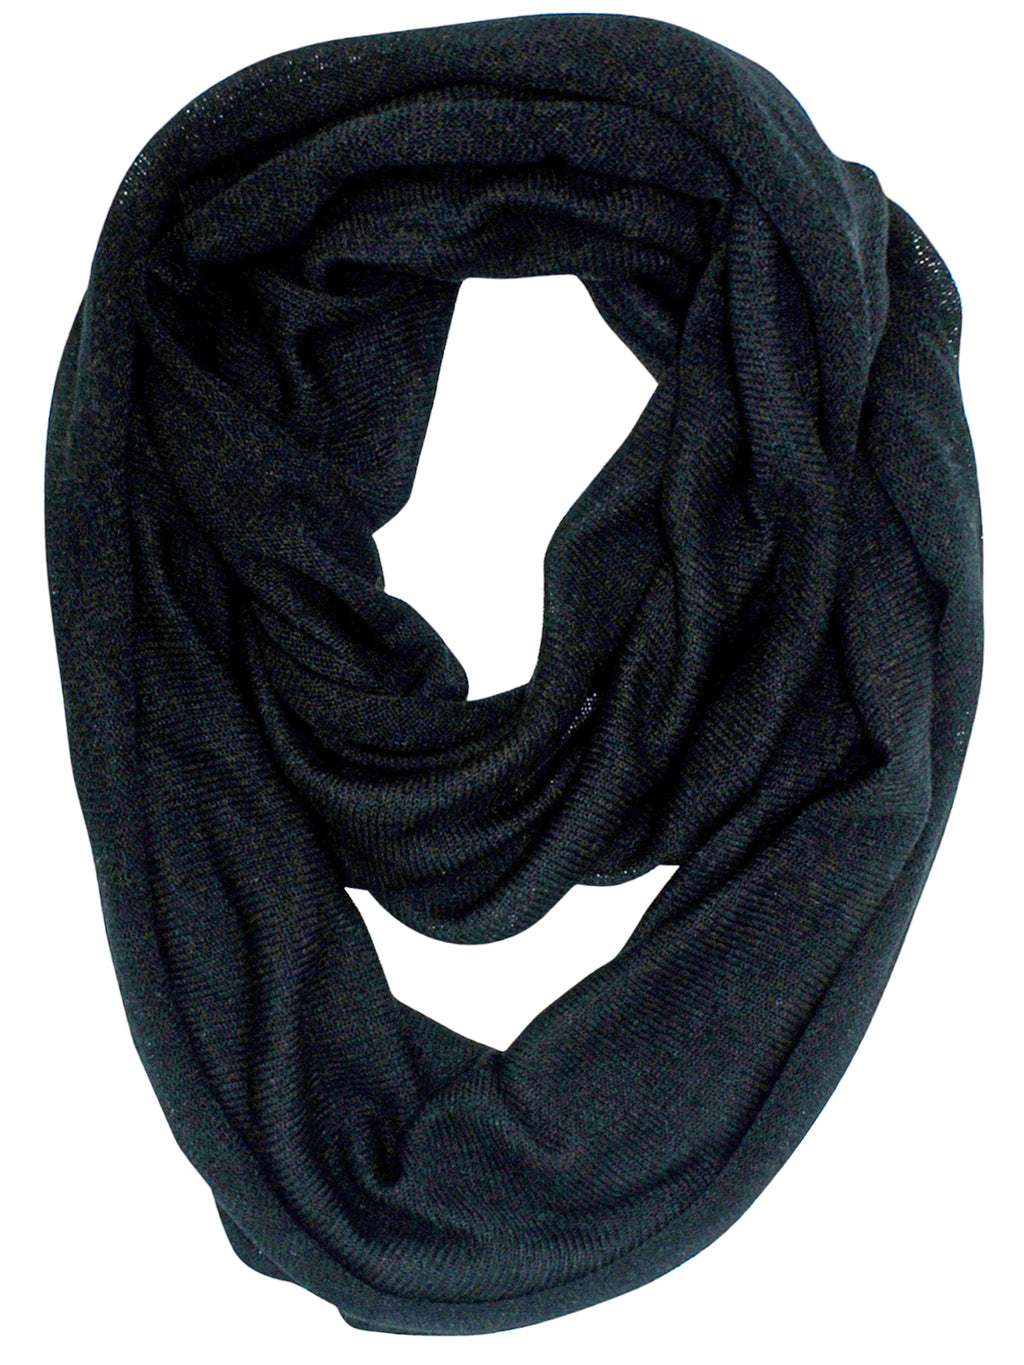 c6e2a39387bb7 Classic Knit Winter Unisex Infinity Scarf